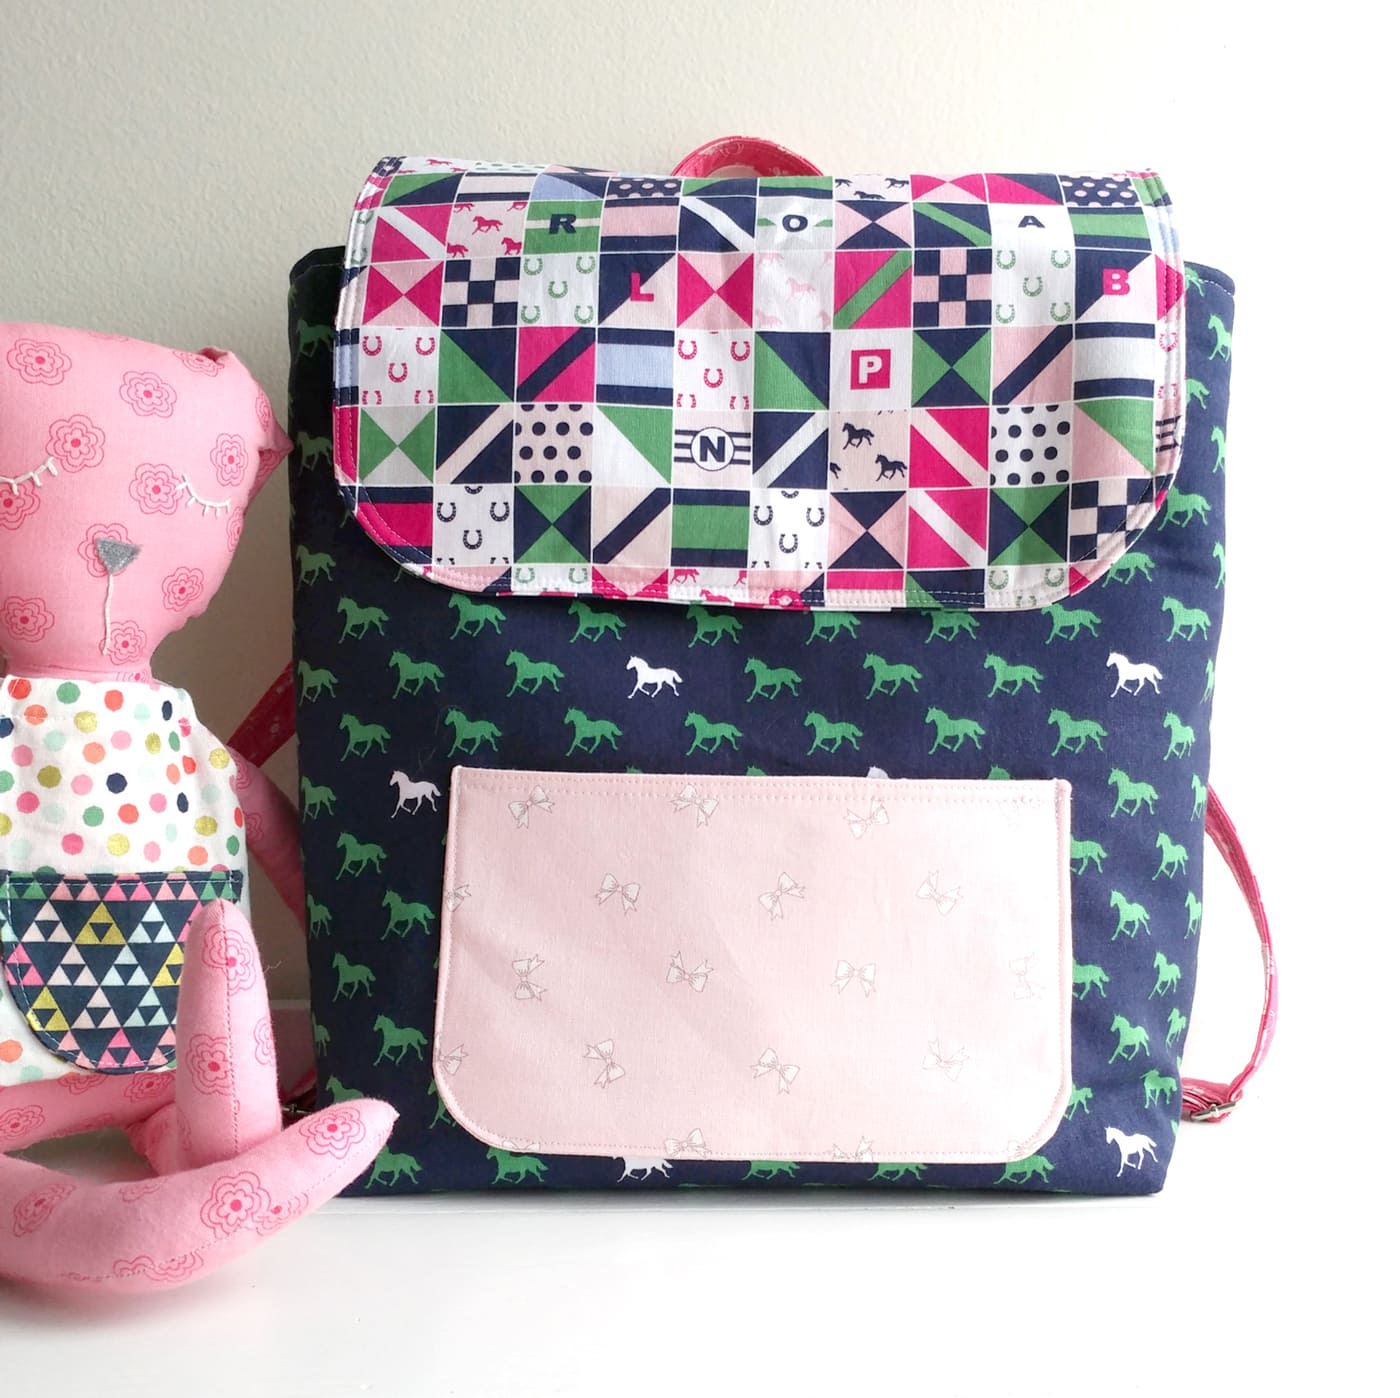 Free sewing tutorial toddler backpack pattern the polka dot chair learn how to sew a mini backpack with this cute toddler backpack pattern stitched up jeuxipadfo Choice Image